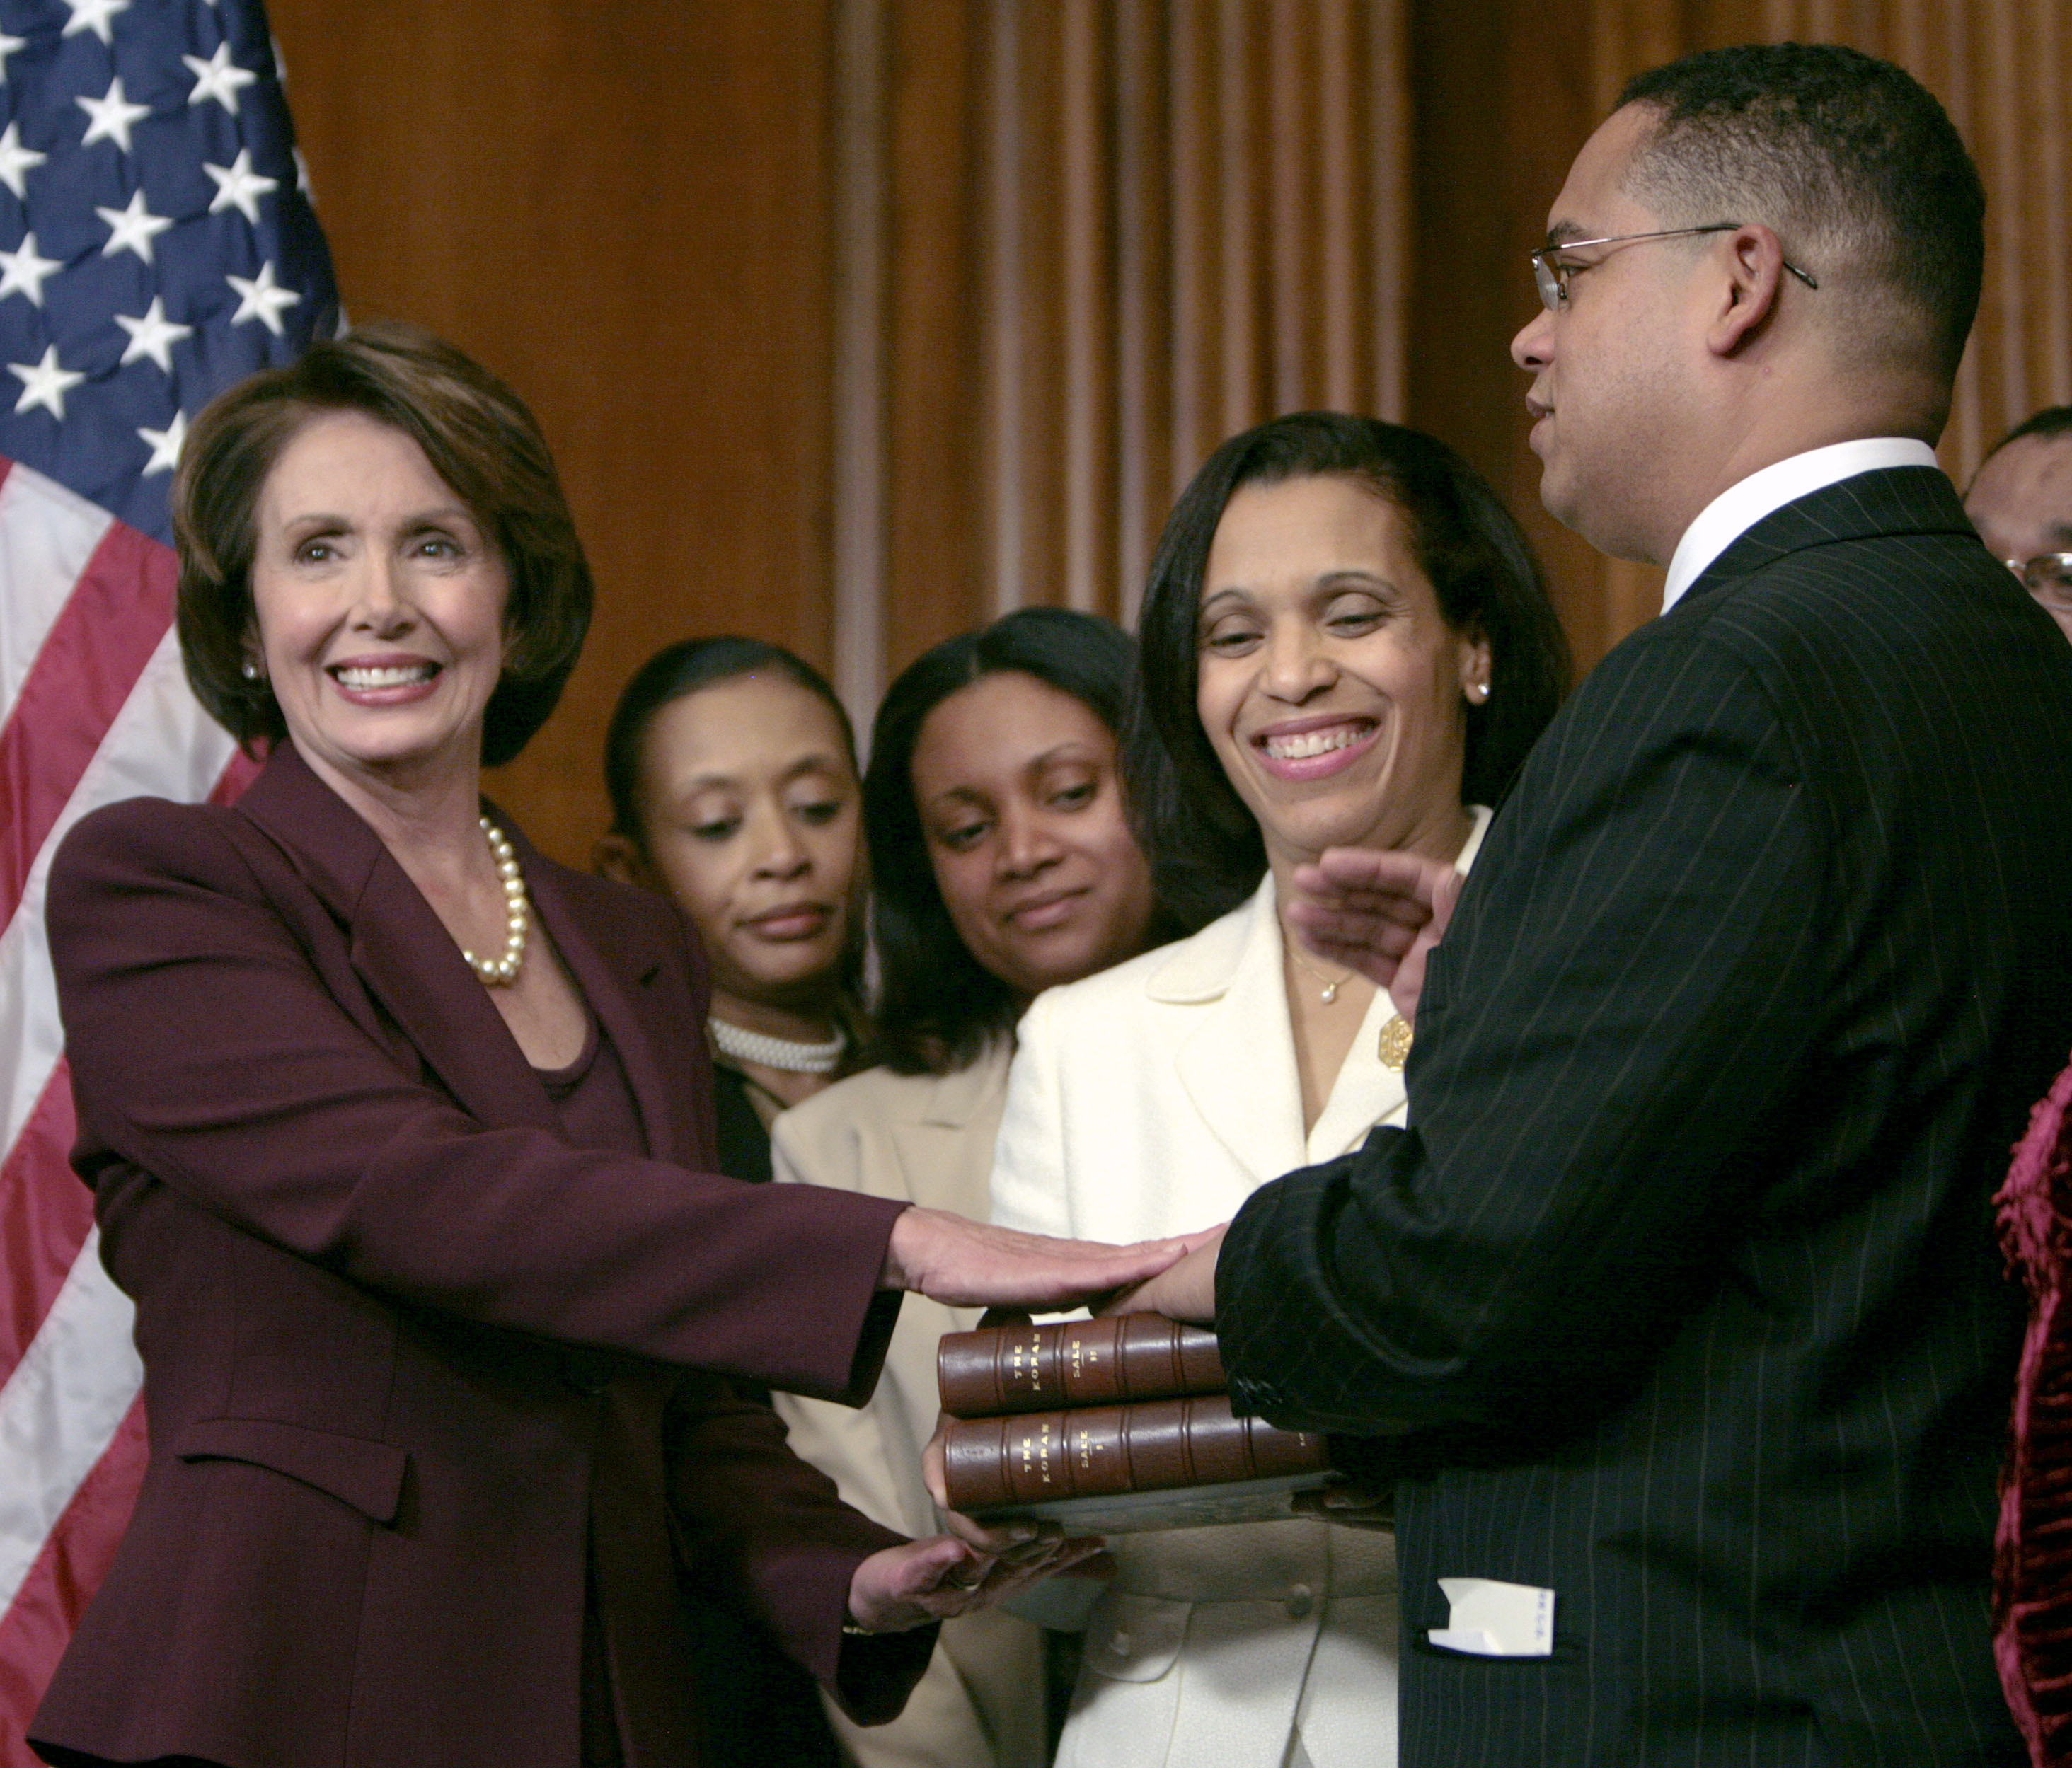 U.S. Rep. Keith Ellison (D-MN) places his hand on an English translation of the Koran once owned by Thomas Jefferson and held by his wife Kim (C) as he is sworn in as the first Muslim member of Congress by Speaker of the House Nancy Pelosi on Captitol Hill in Washington, January 4th, 2007. REUTERS/Jim Young